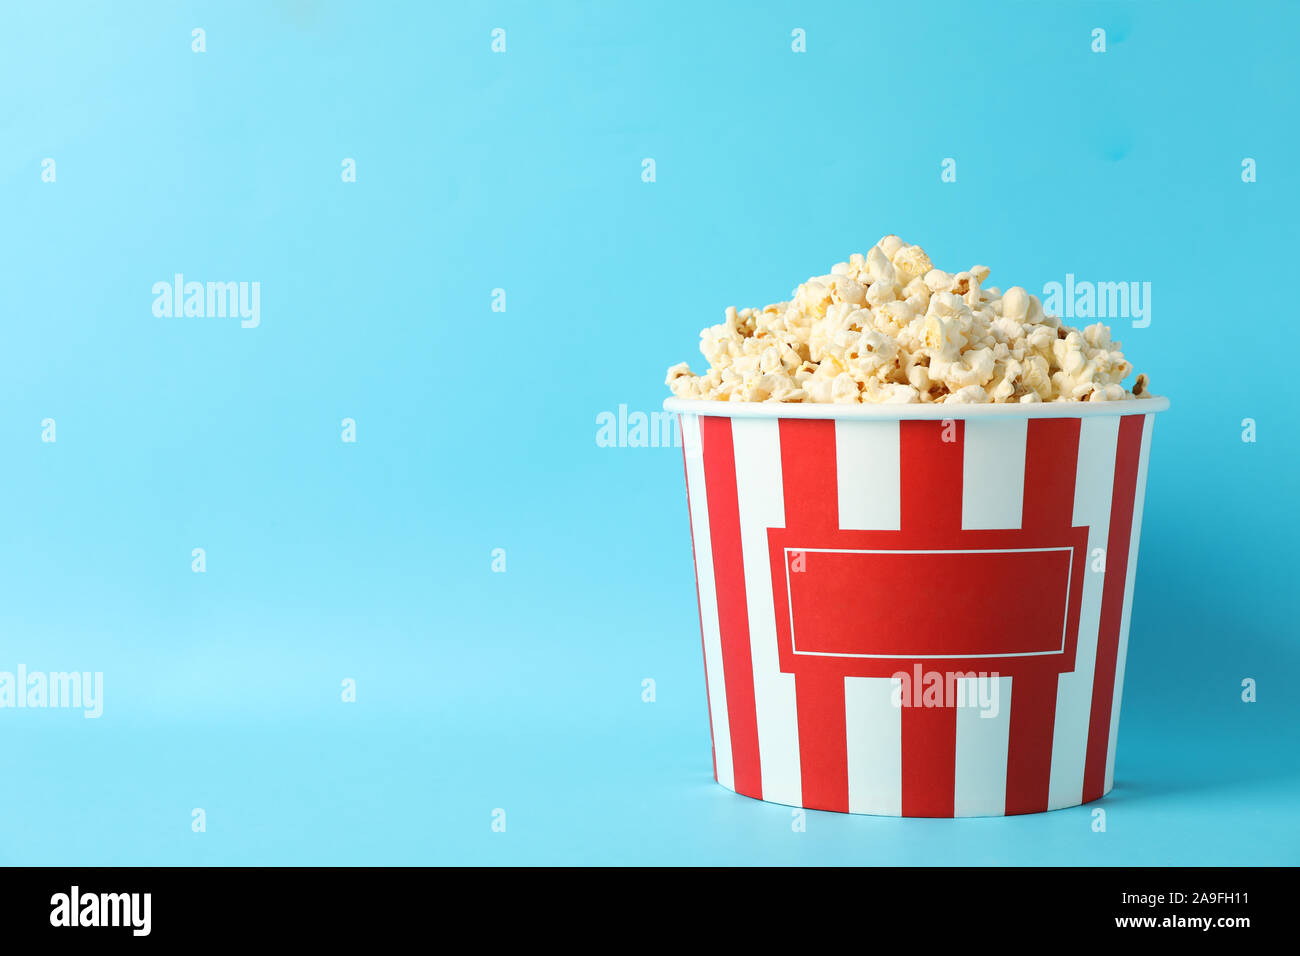 Striped Bucket With Popcorn On Blue Background Space For Text Stock Photo Alamy